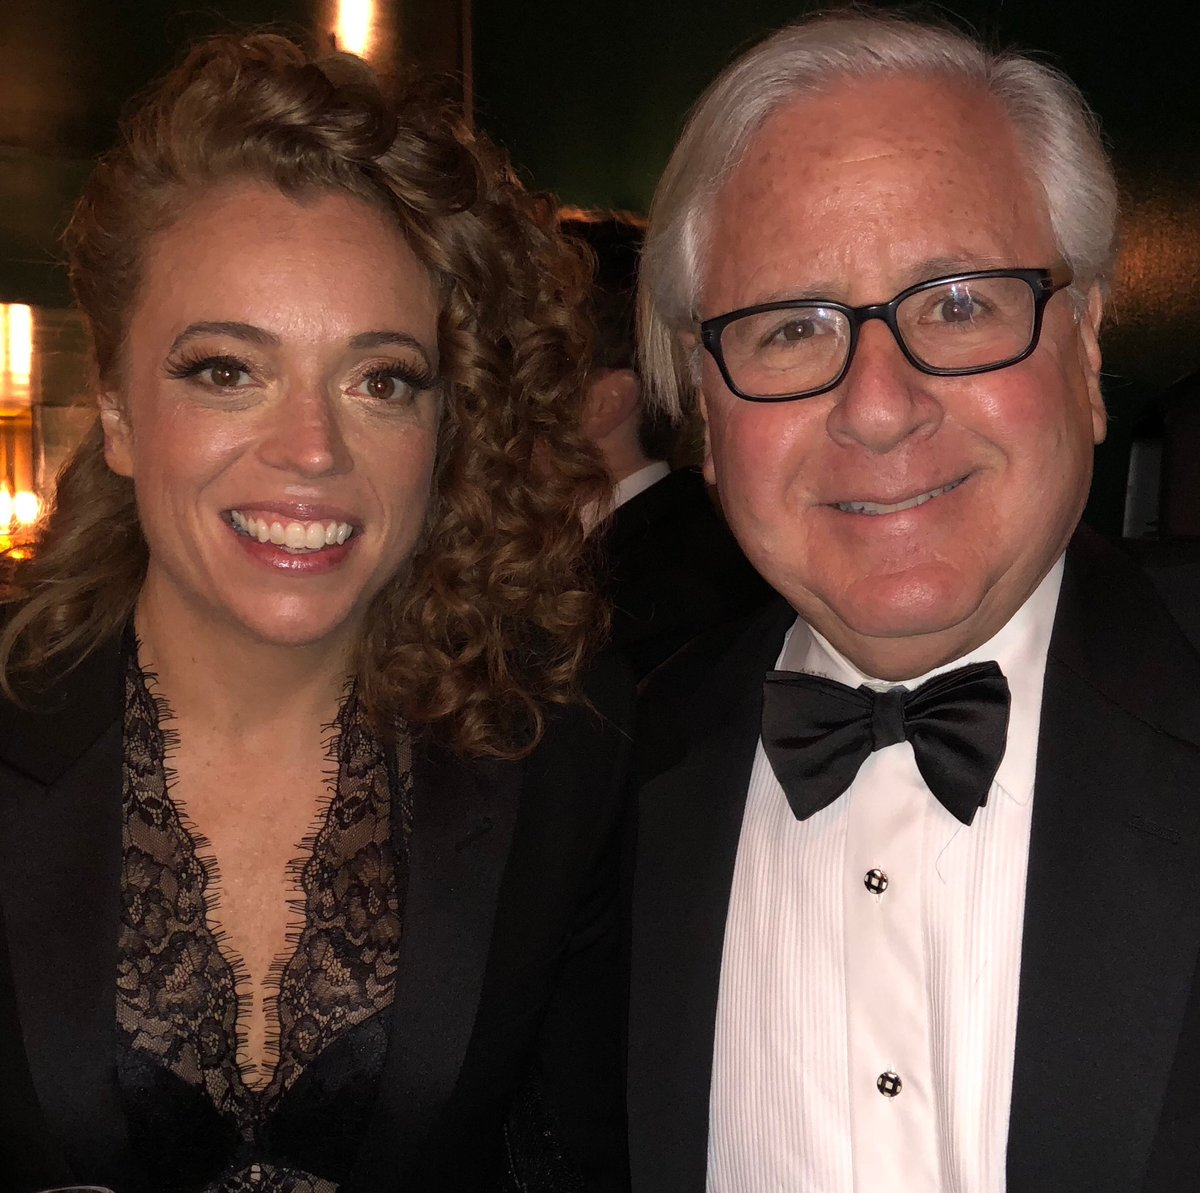 RE #MichelleWolf: 1. Yep: blunt, crude, pitiless. Remind you of, say, a president? 2. She torched EVERYONE, even #Dems, #Stormy, #media. 3. She wasn't playing to all America or the room, but to her #Netflix deal. 4. She was INVITED. 5. It's not her job to behave. 6. She's funny.